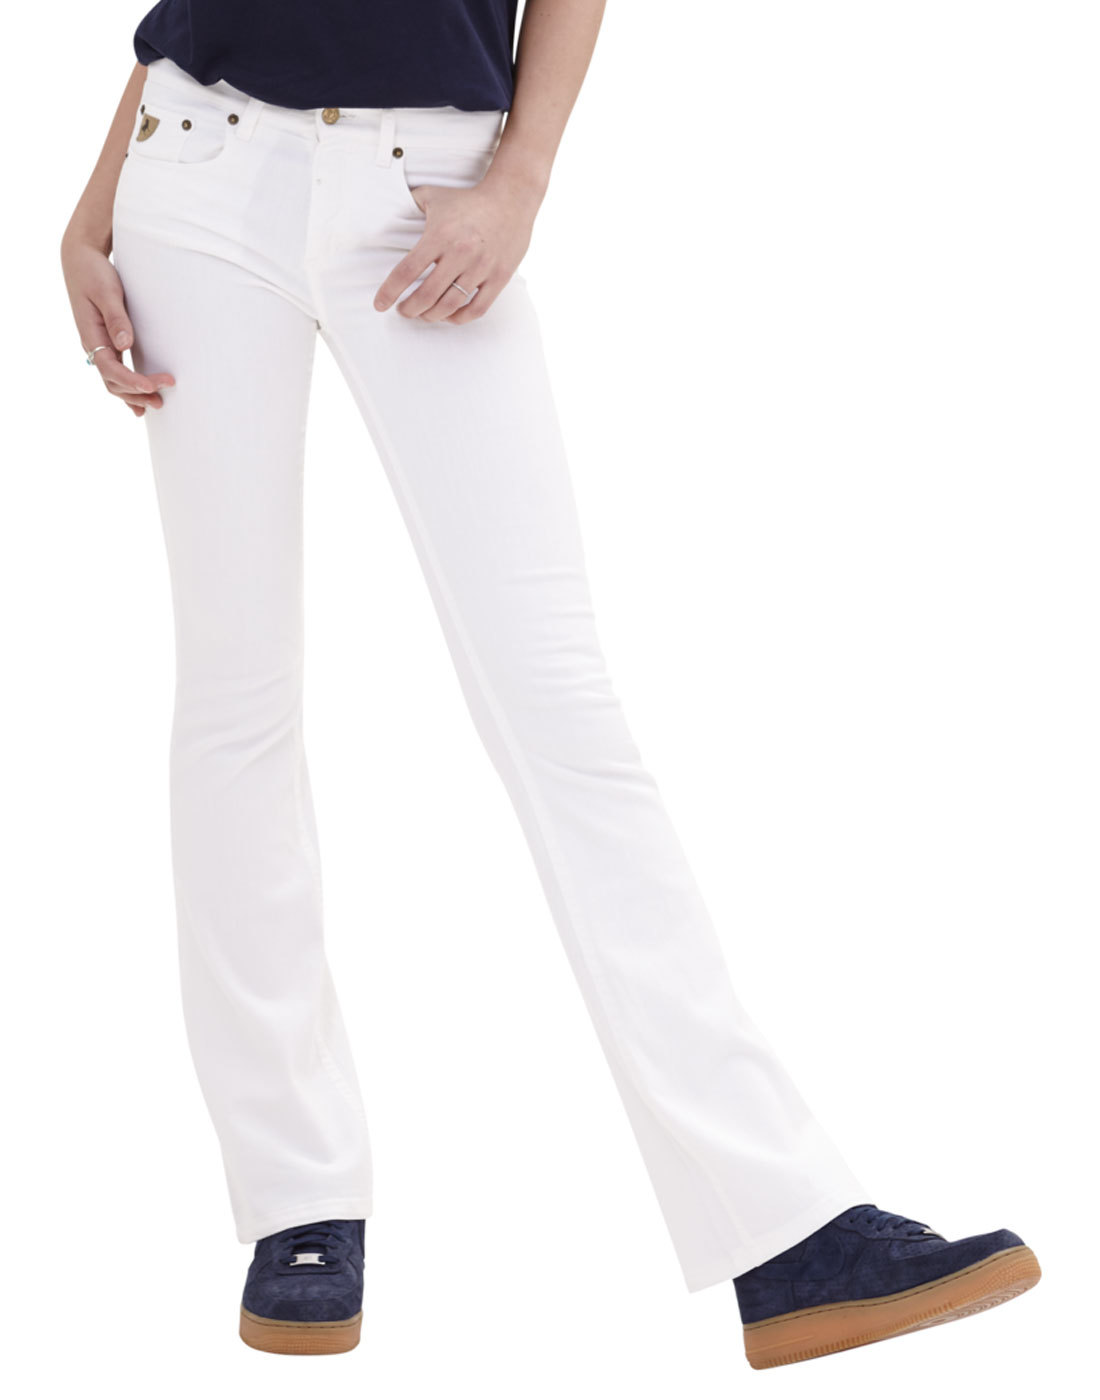 Melrose LOIS Retro 1970s Satin White Denim Flares